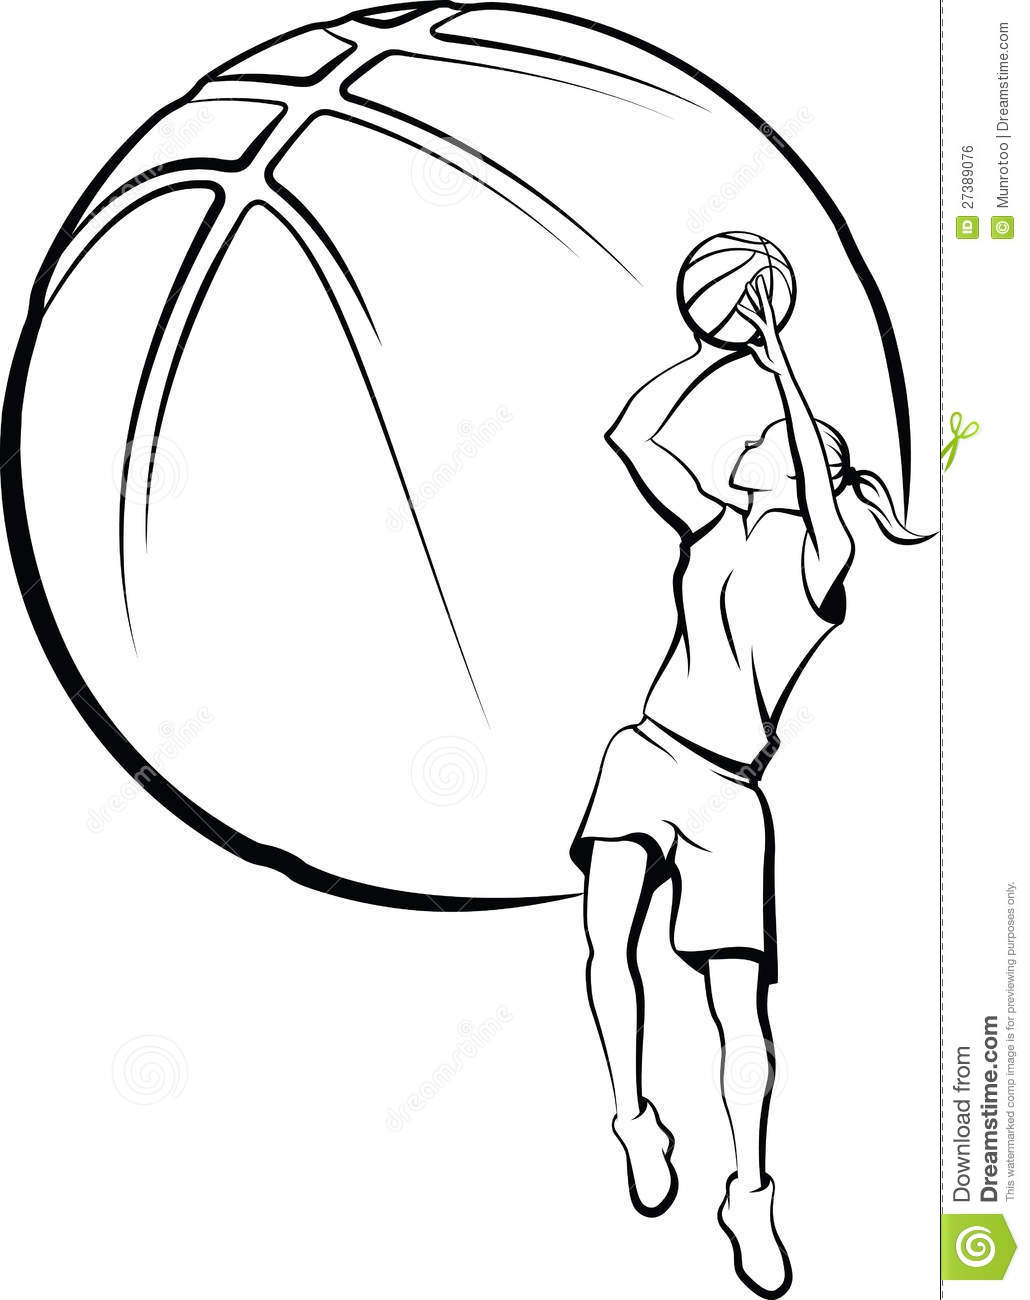 1030x1300 Basketball Clipart, Suggestions For Basketball Clipart, Download